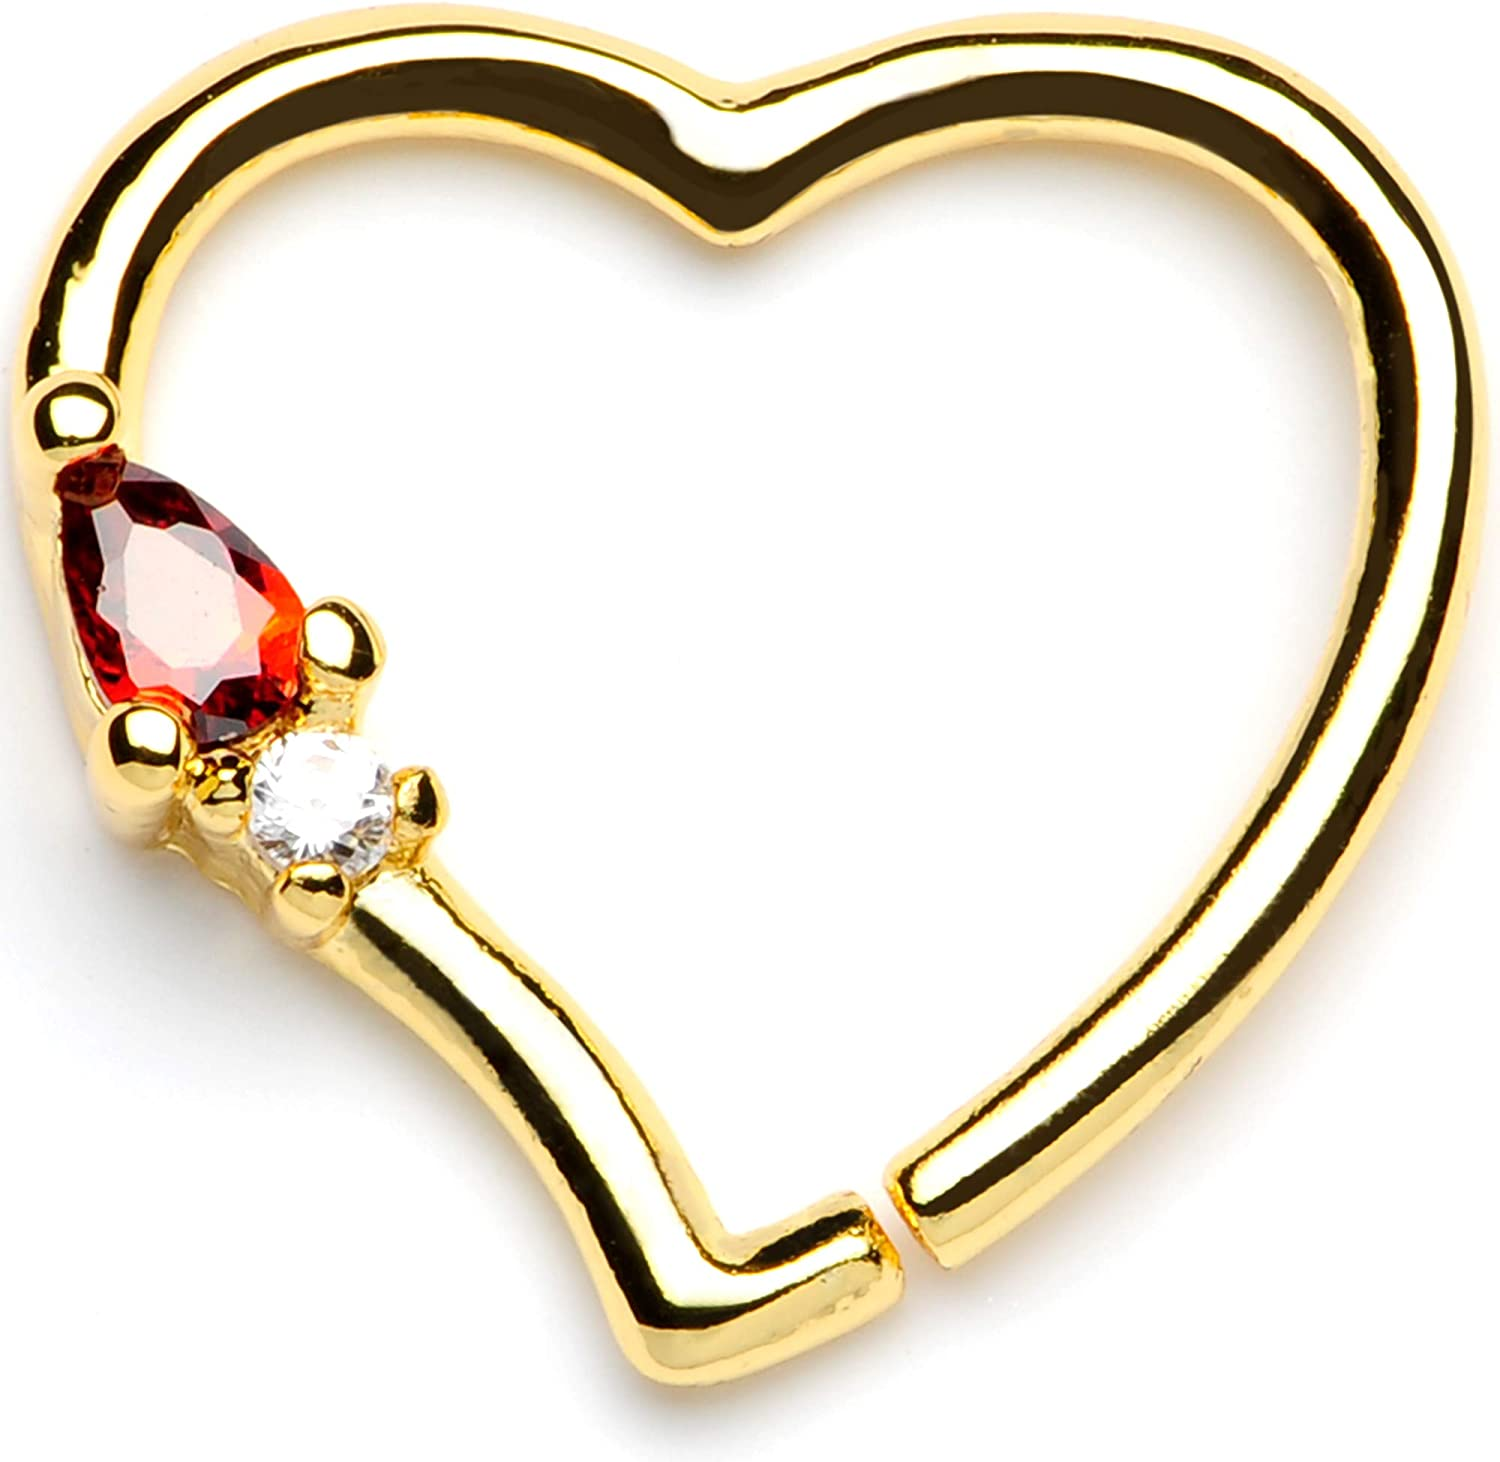 Body Candy 16G Gold Plated Brass Right Ear Helix Daith Cartilage Earring Red Accent Heart Body Jewelry 10mm